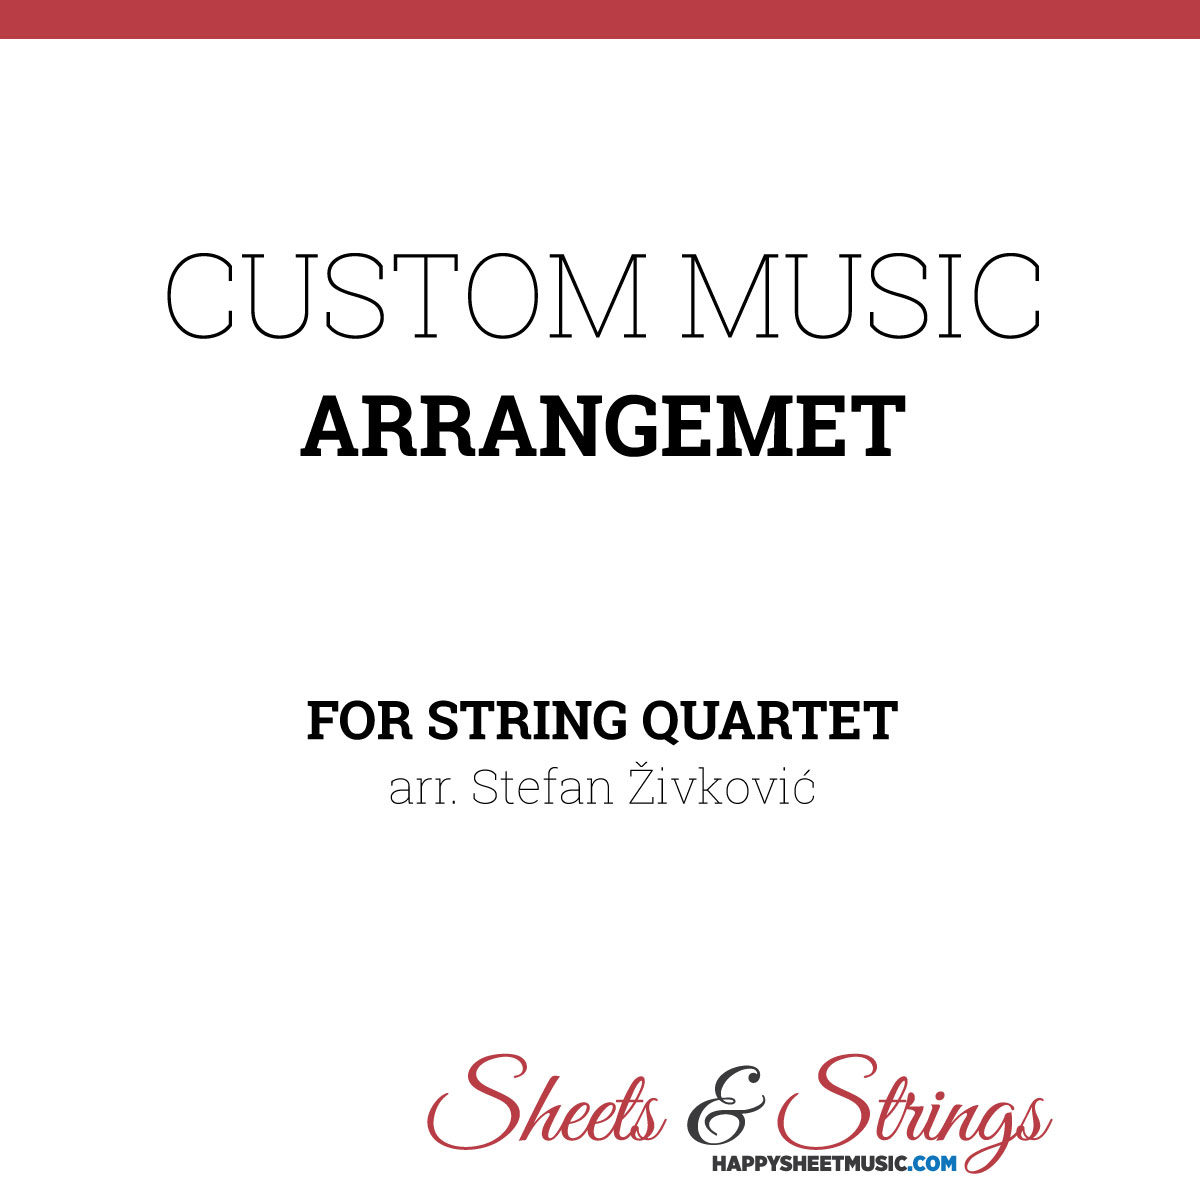 Custom Music Arrangement for String Quartet